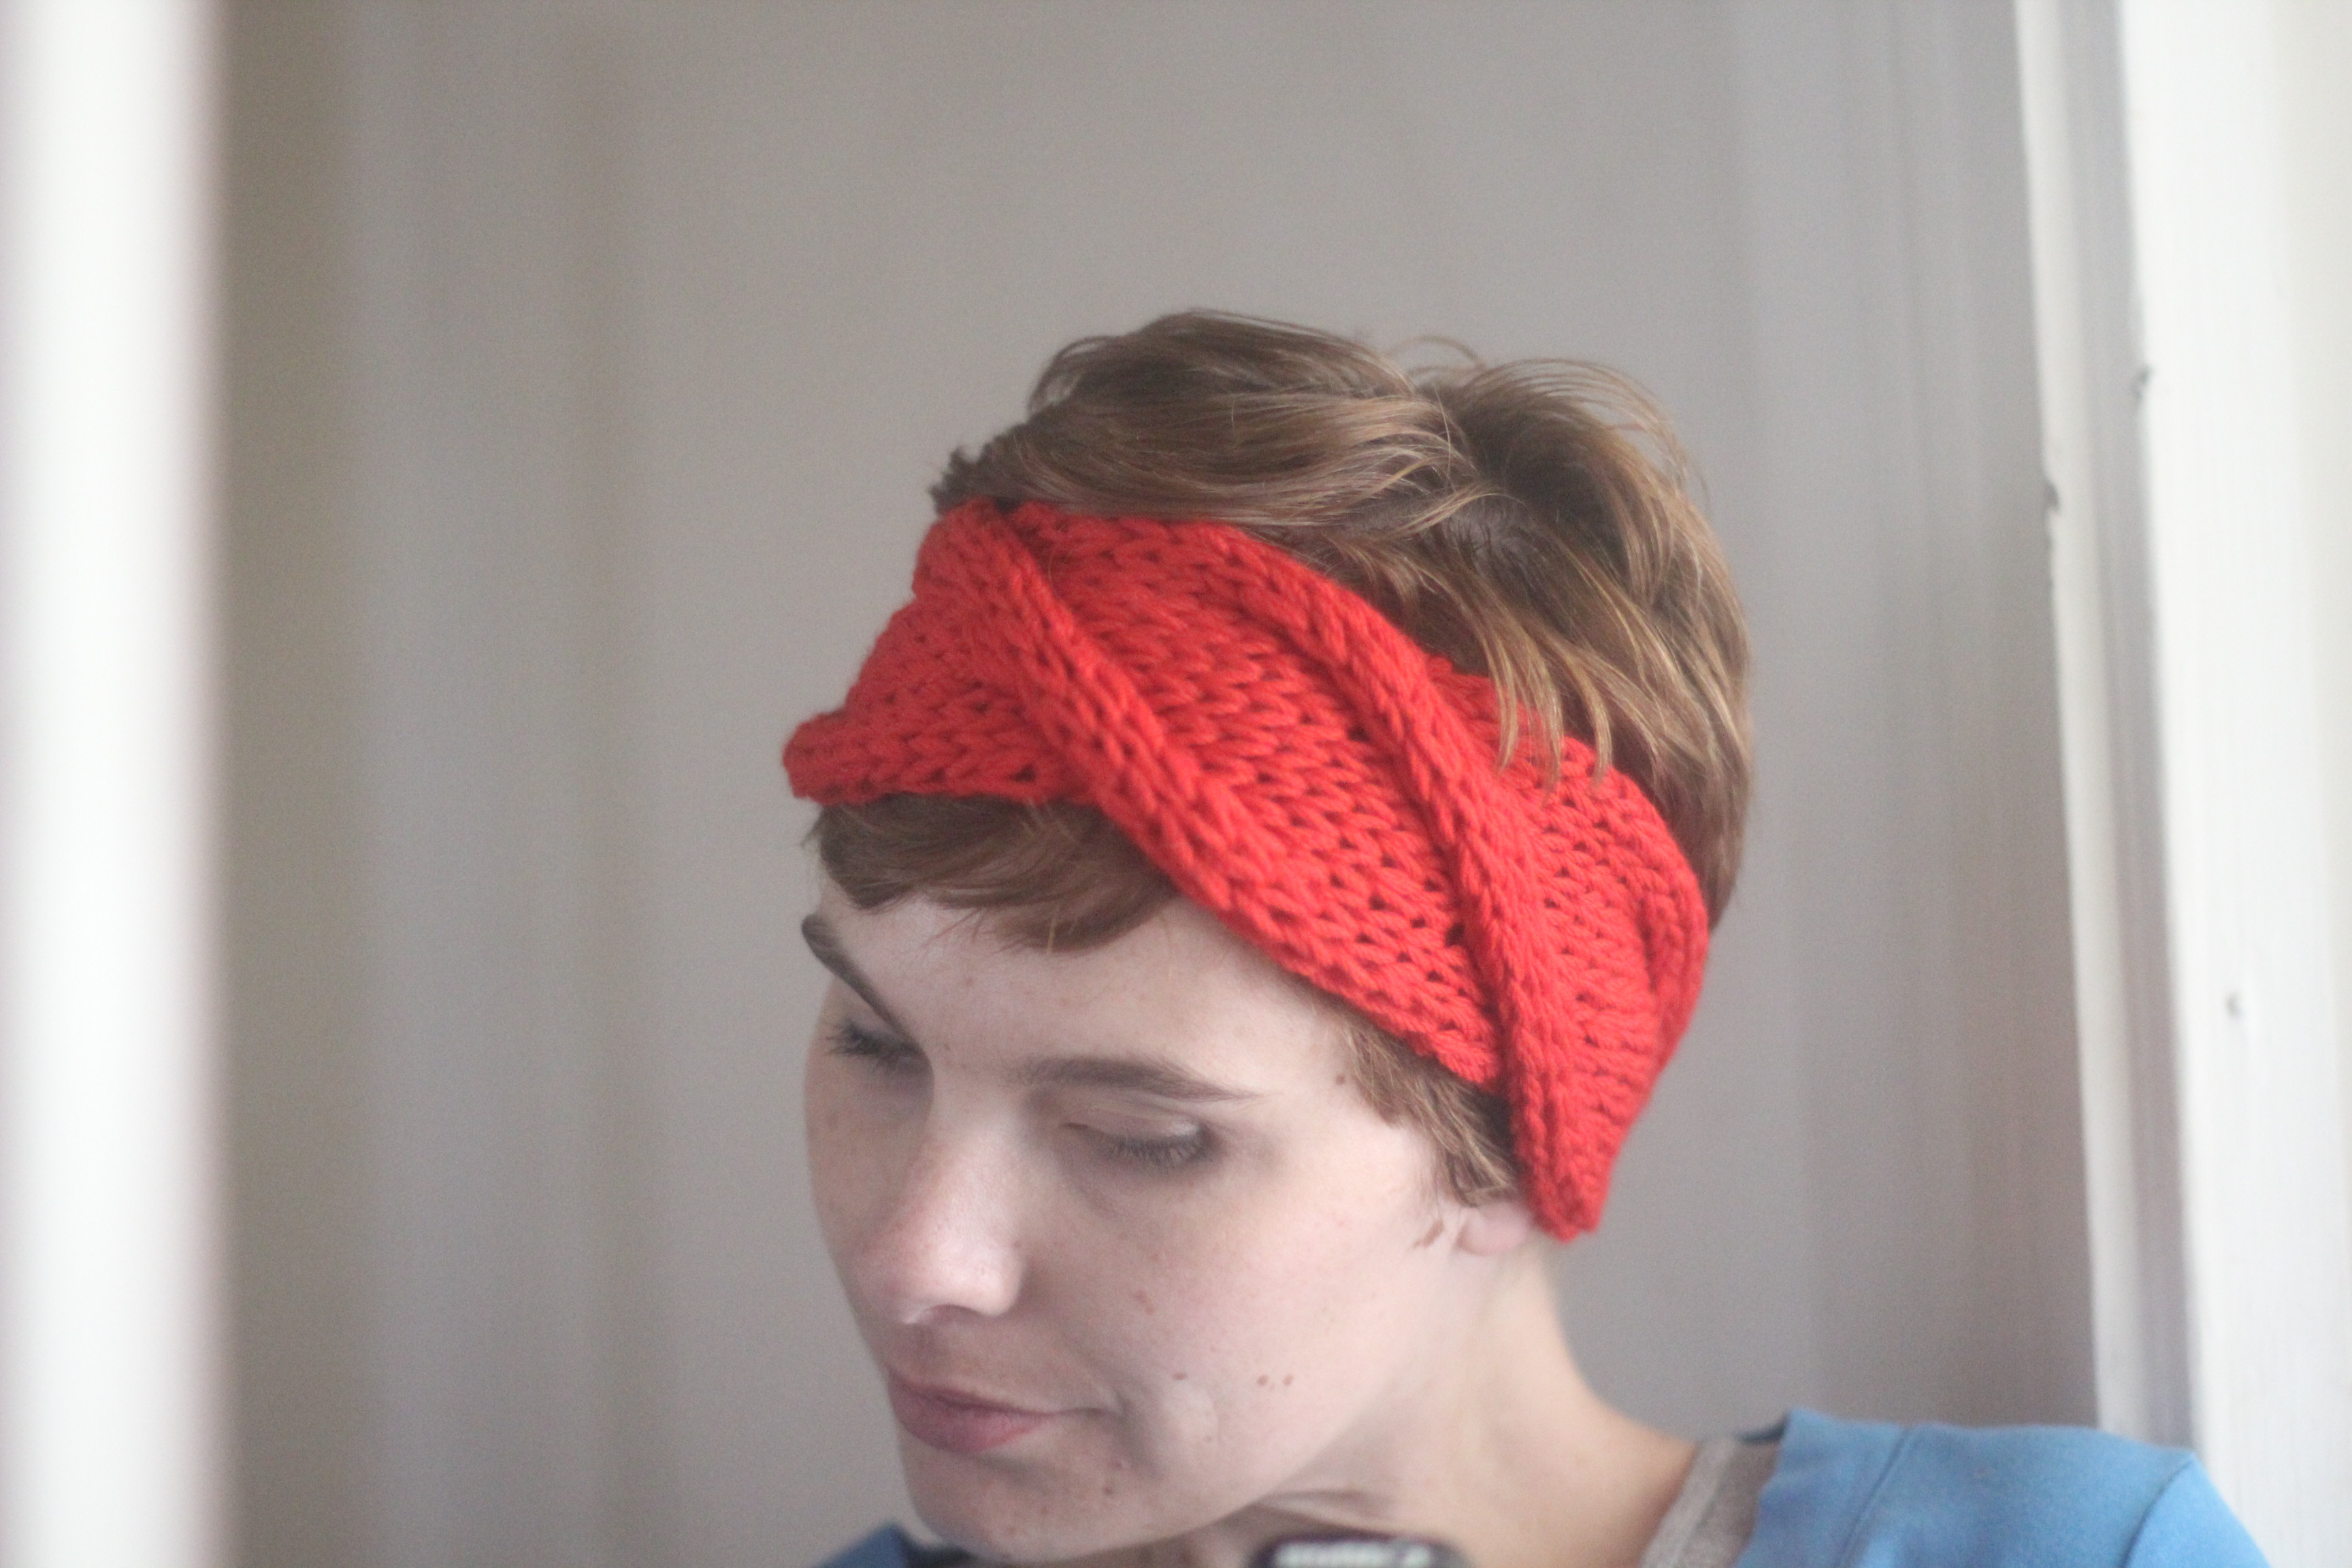 Knit Headband Pattern With Flower Ba Headbands Ba Headband Knit Pattern Free